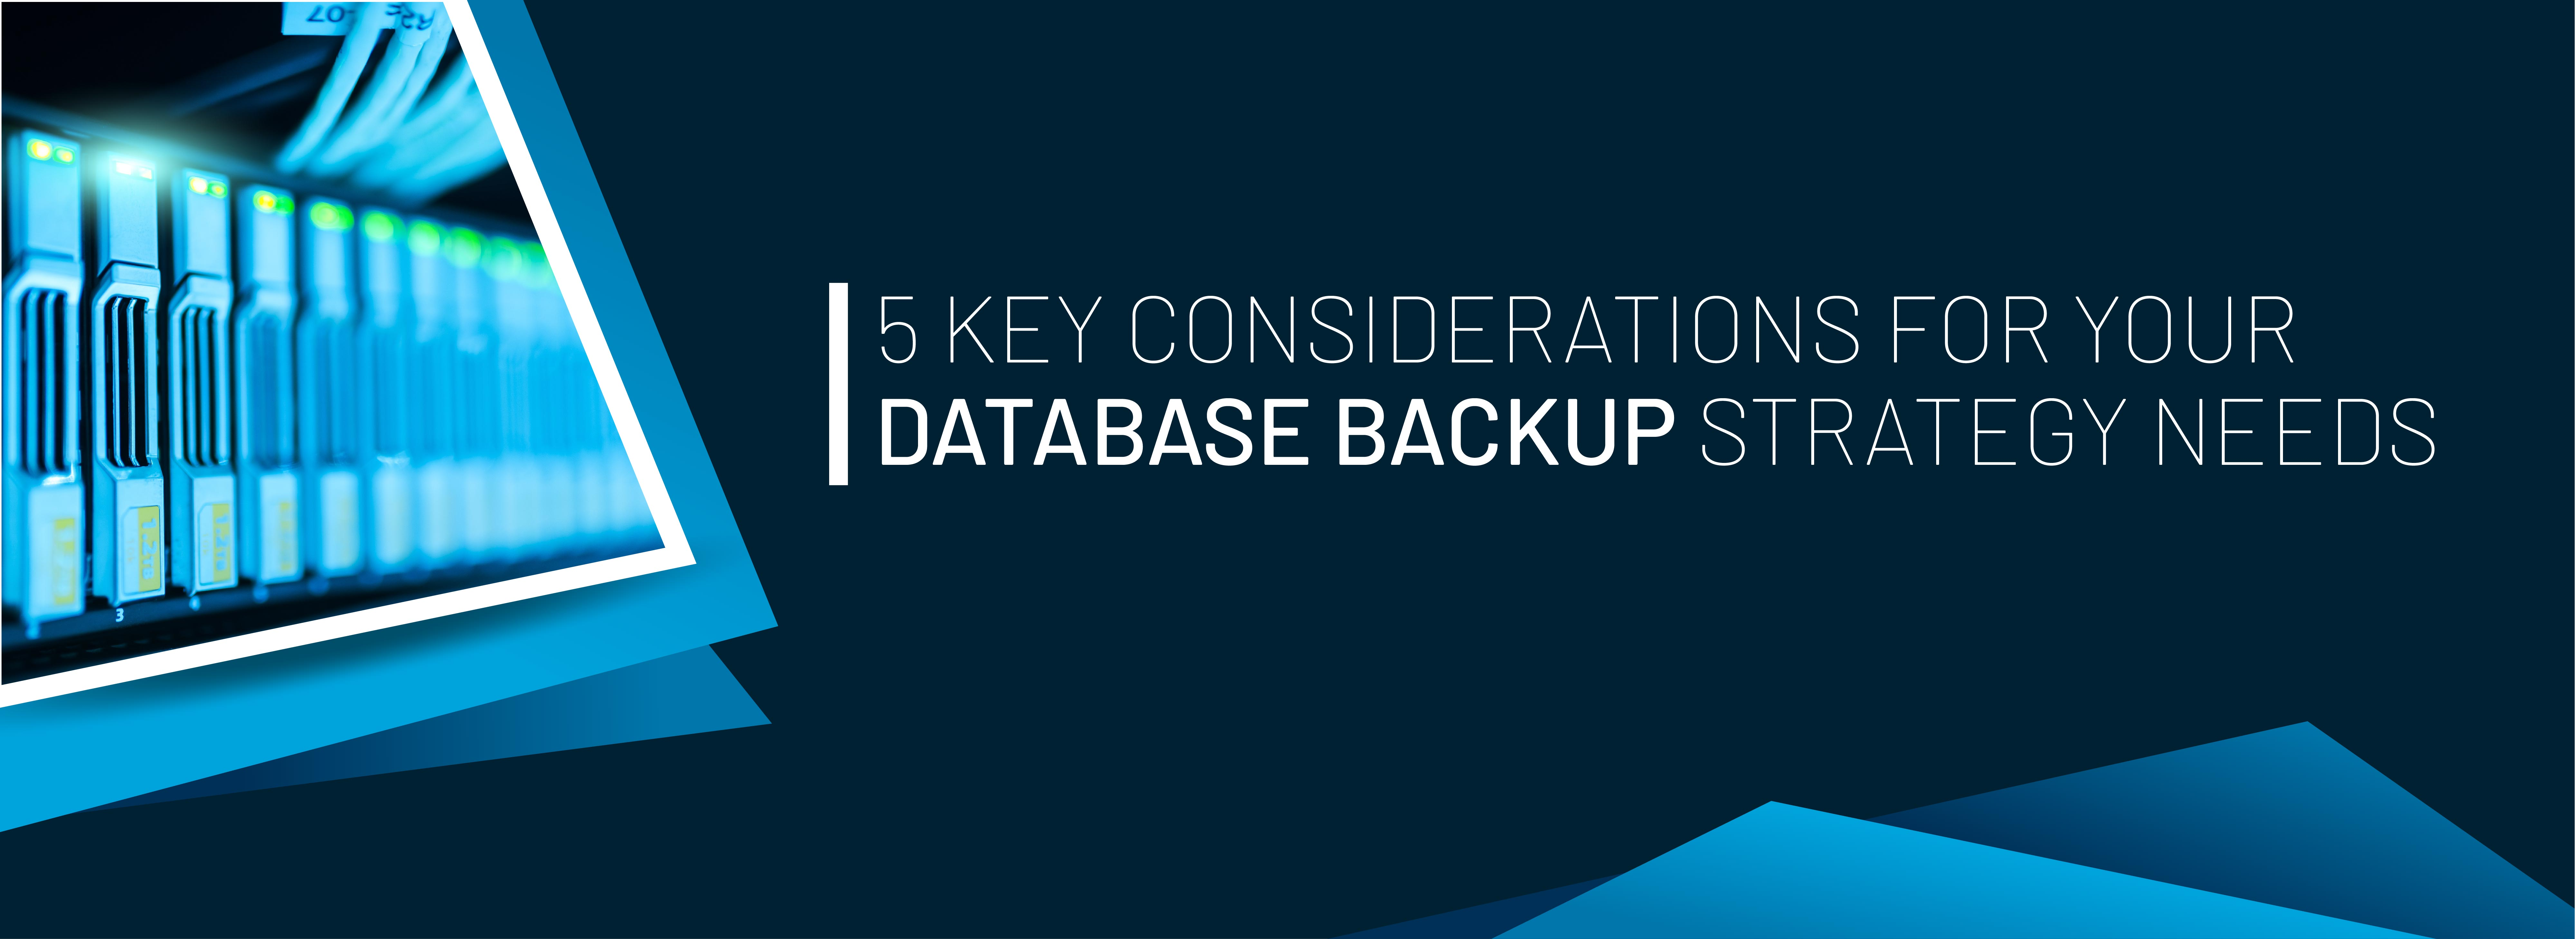 banners-01-Web View_5 KEY CONSIDERATIONS FOR YOUR DATABASE BACKUP STRATEGY NEEDS